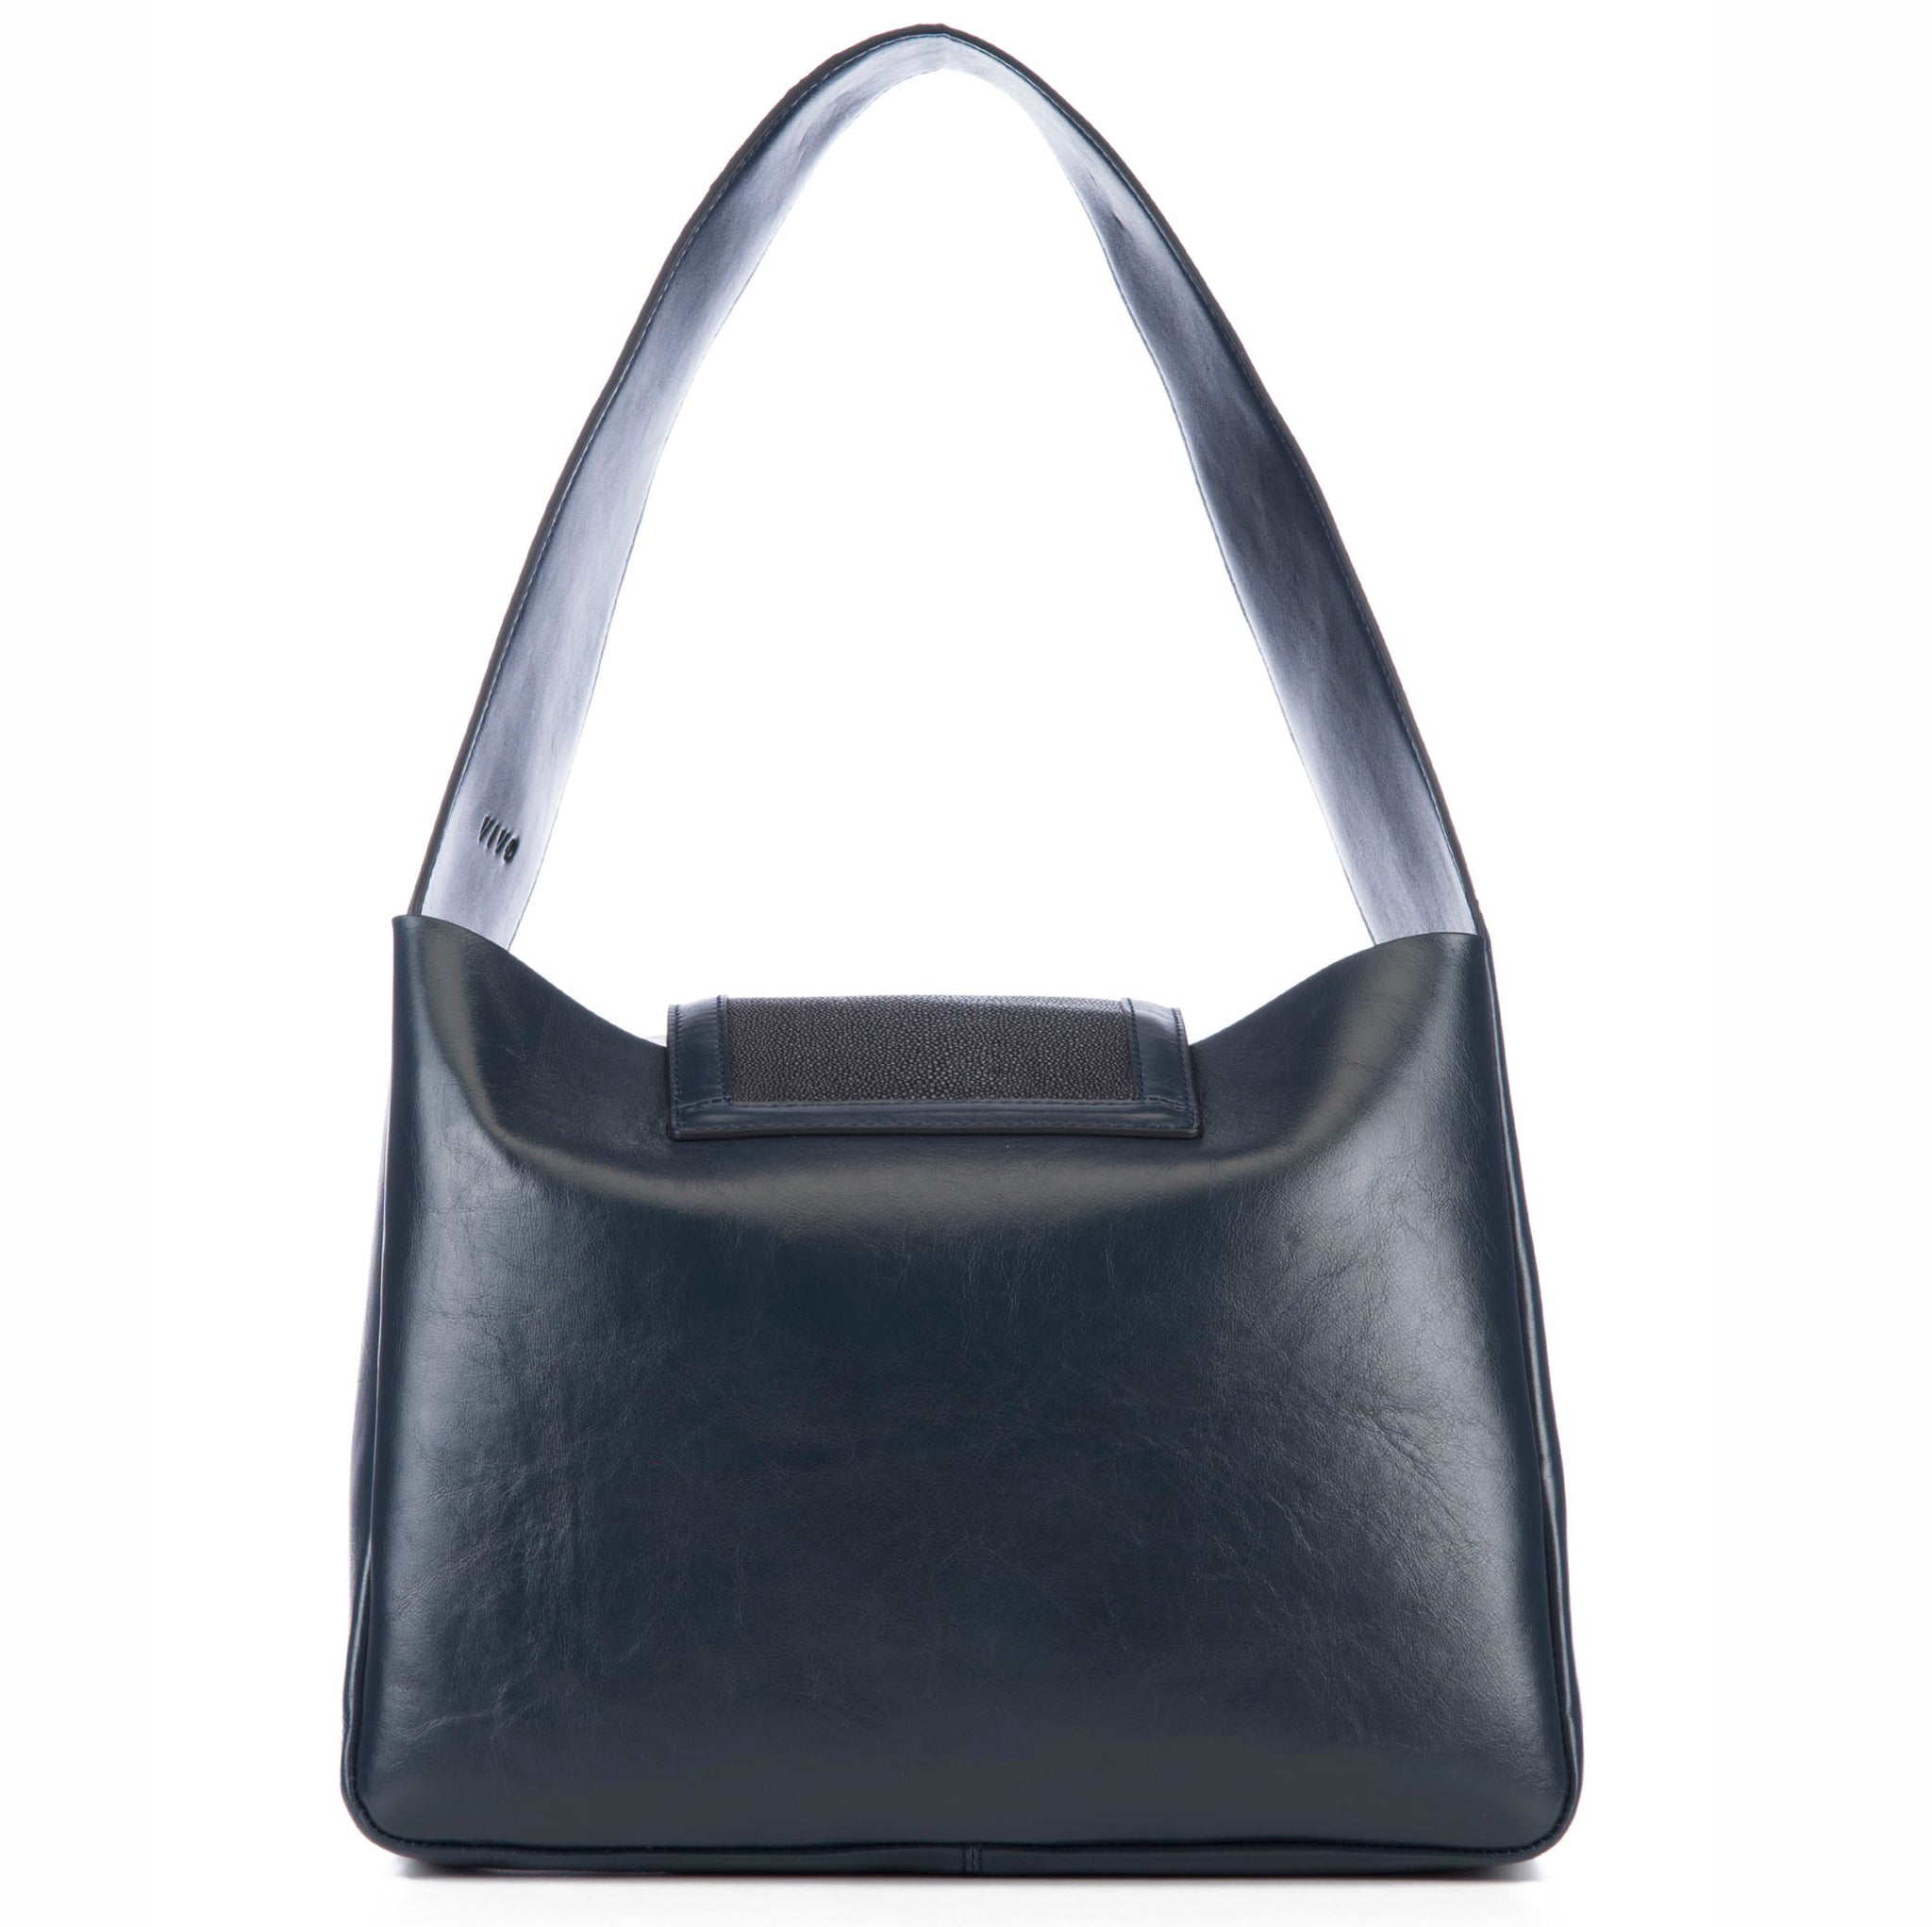 Eve Navy Leather Shoulder Tote With Black Shagreen Flap And Leather Knot Detail Back View - Vivo Direct